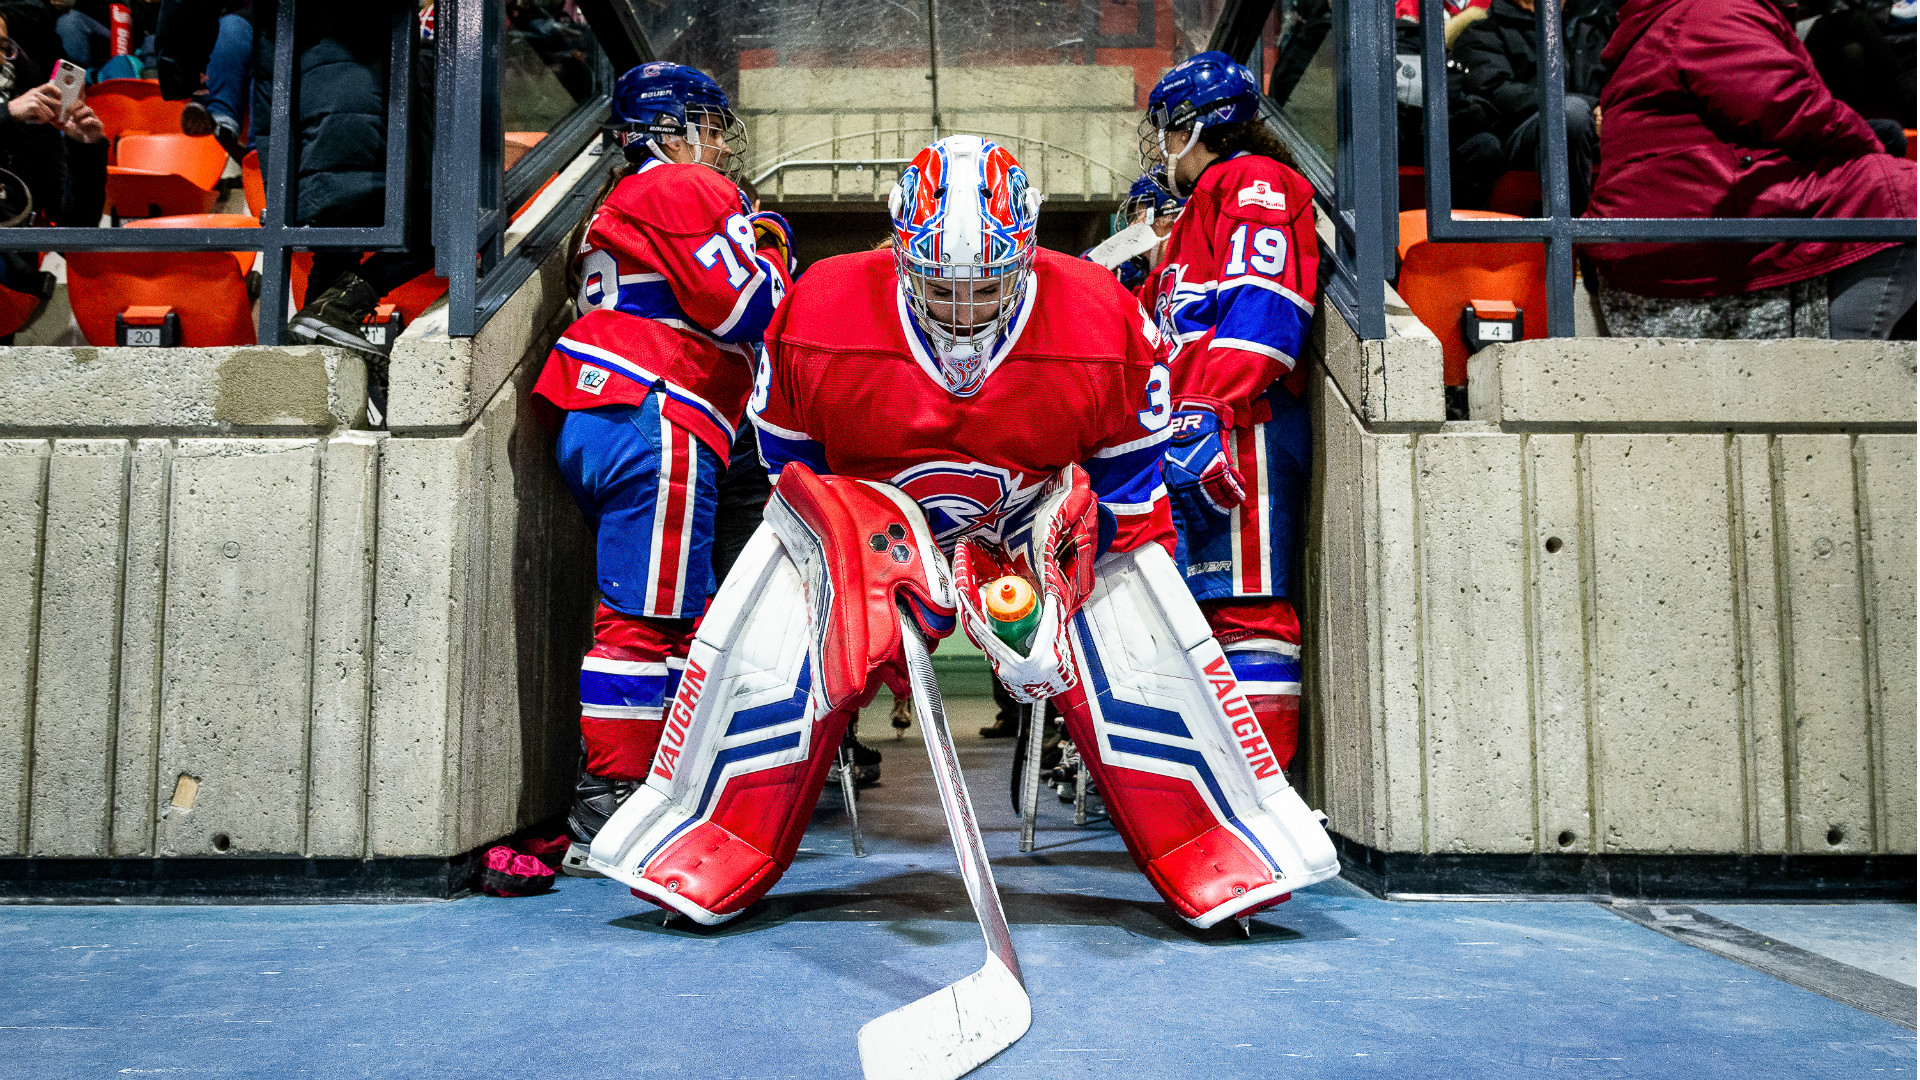 Emerance Maschmeyer, Les Canadiennes ready for Clarkson Cup Final with or without Marie-Philip Poulin